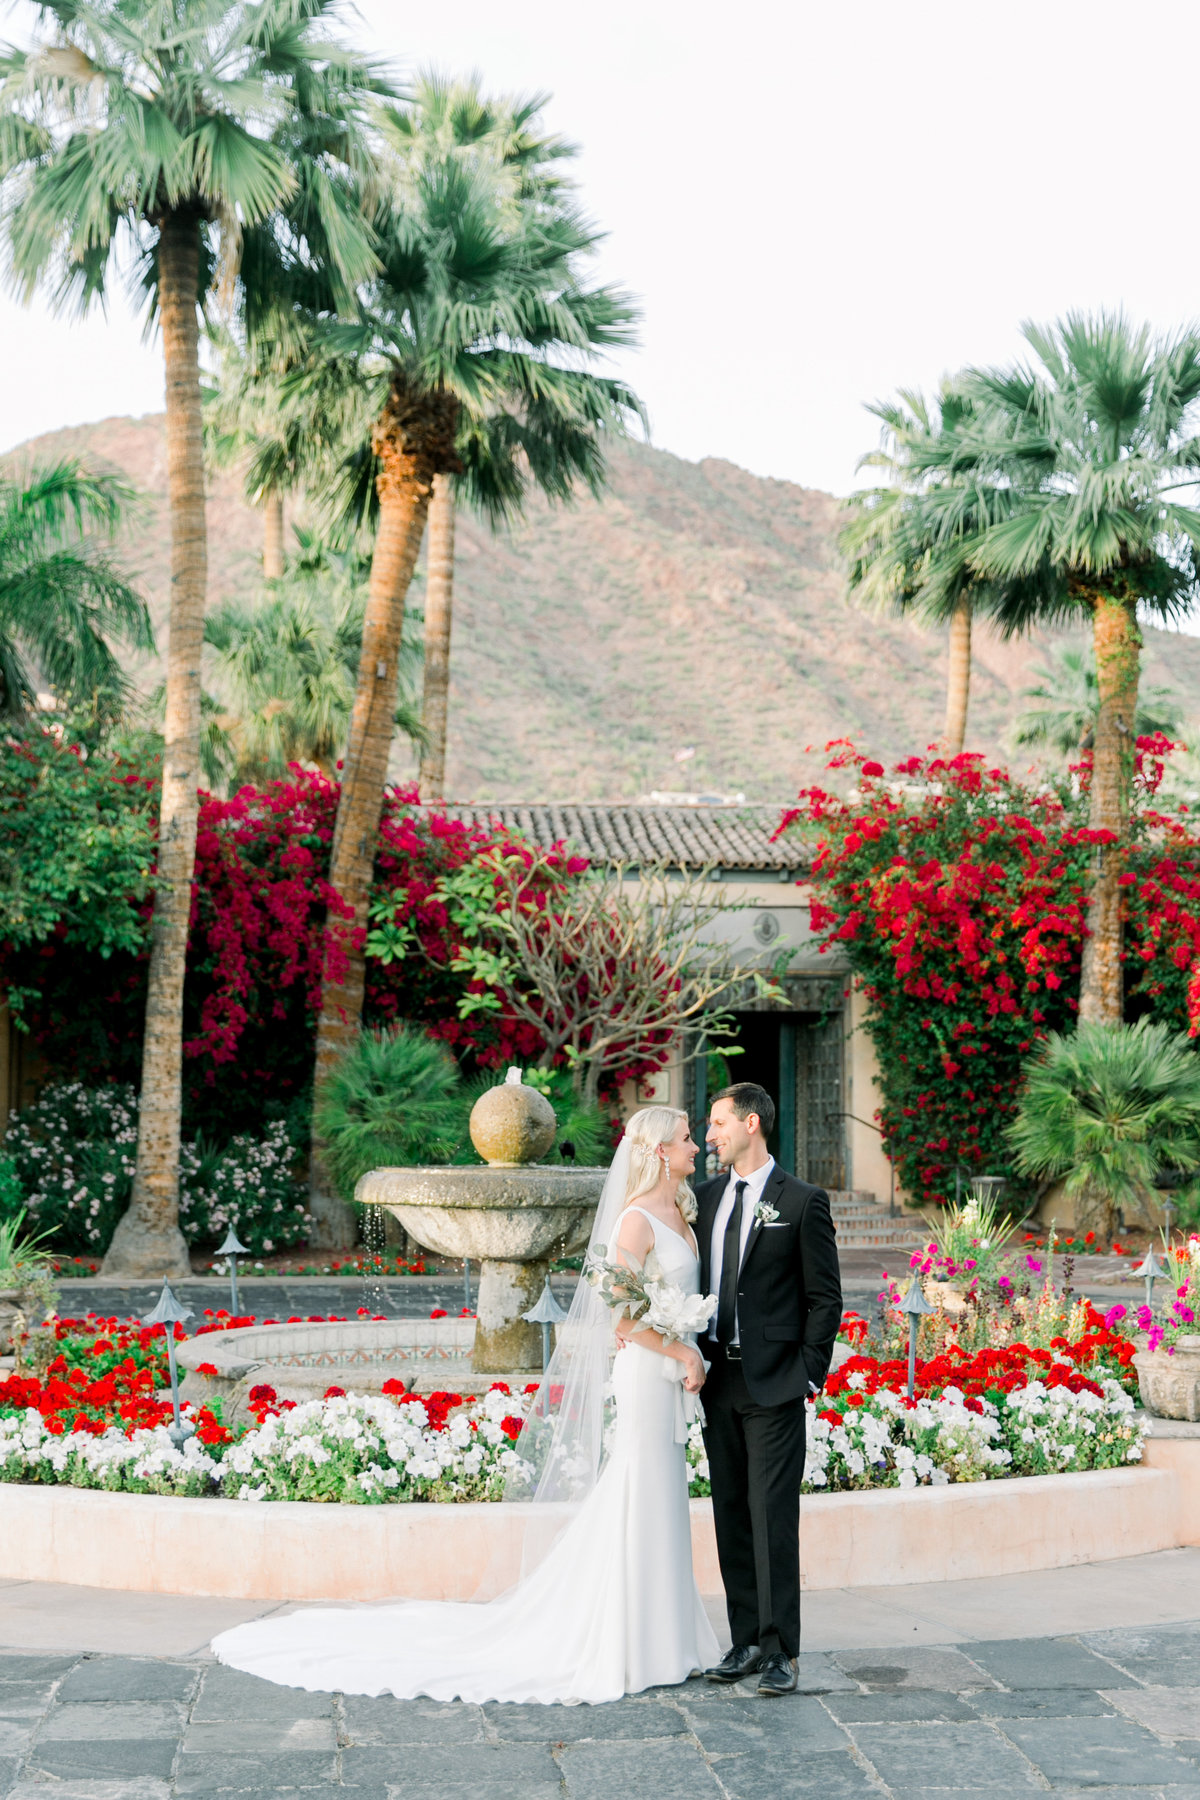 Karlie Colleen Photography - The Royal Palms - Arizona Wedding - Alex & Alex-568